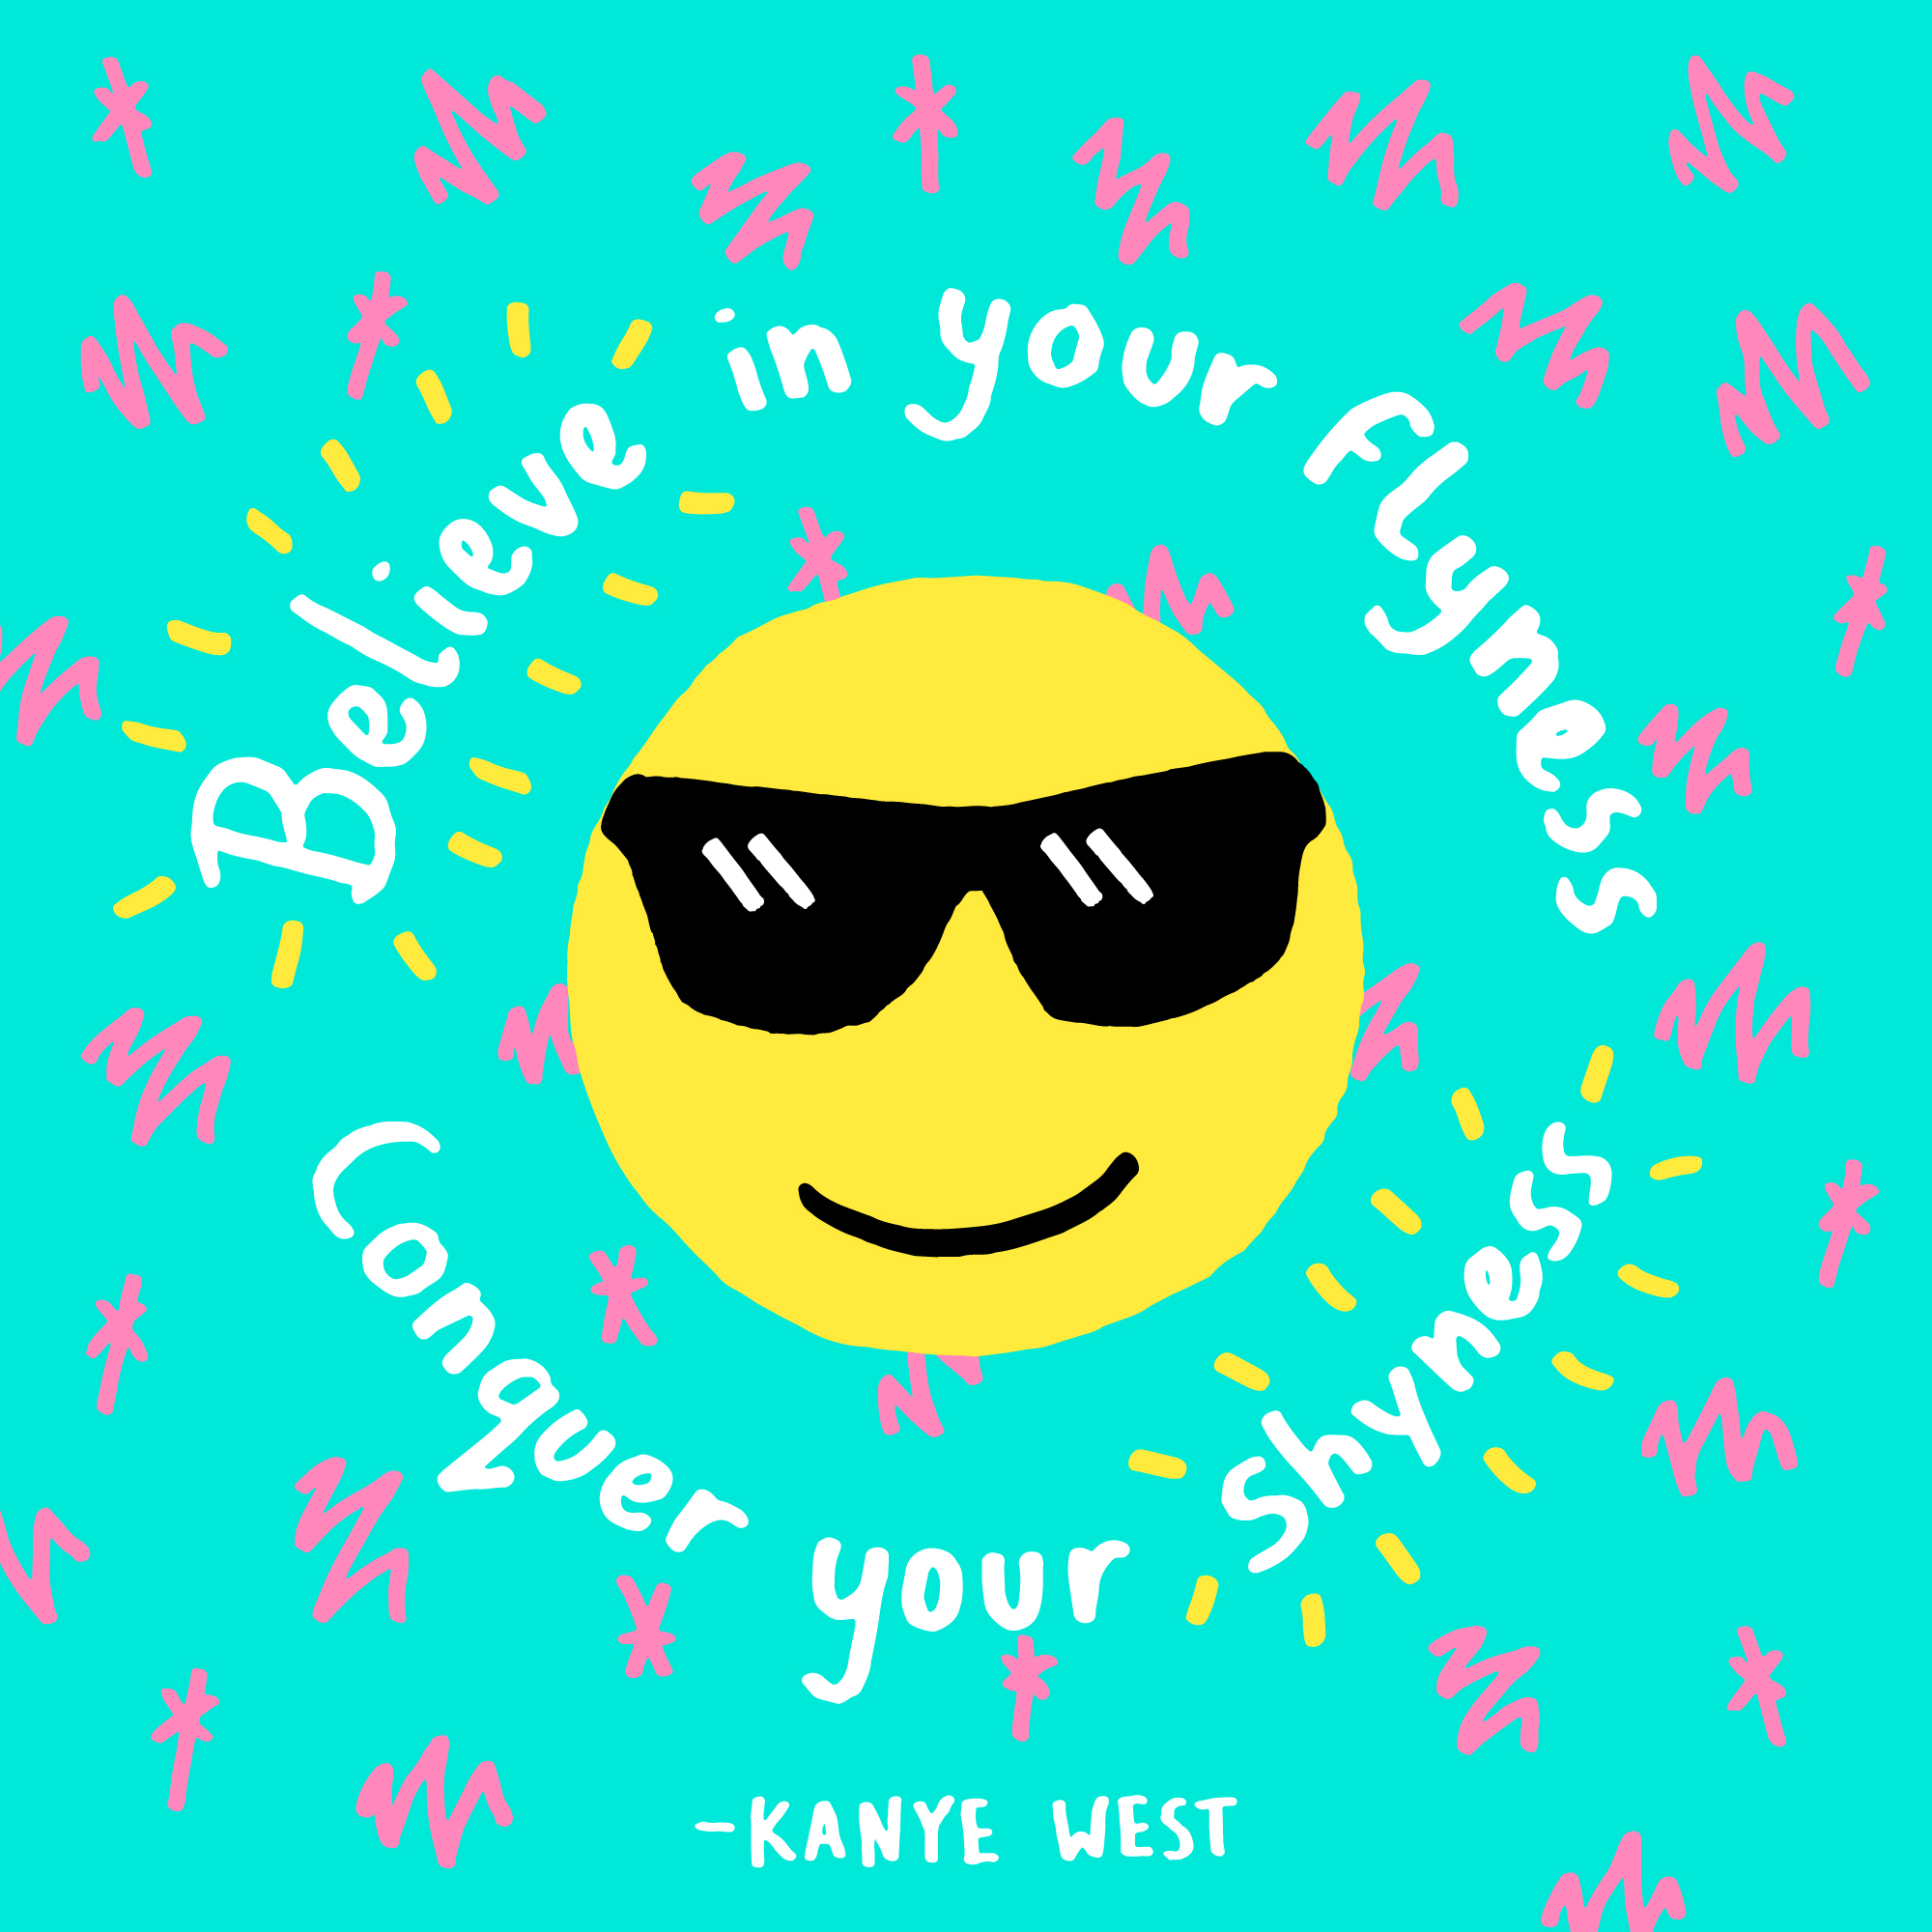 5 Design Quotes by Kanye West, Picasso, Thomas Edison, and ...